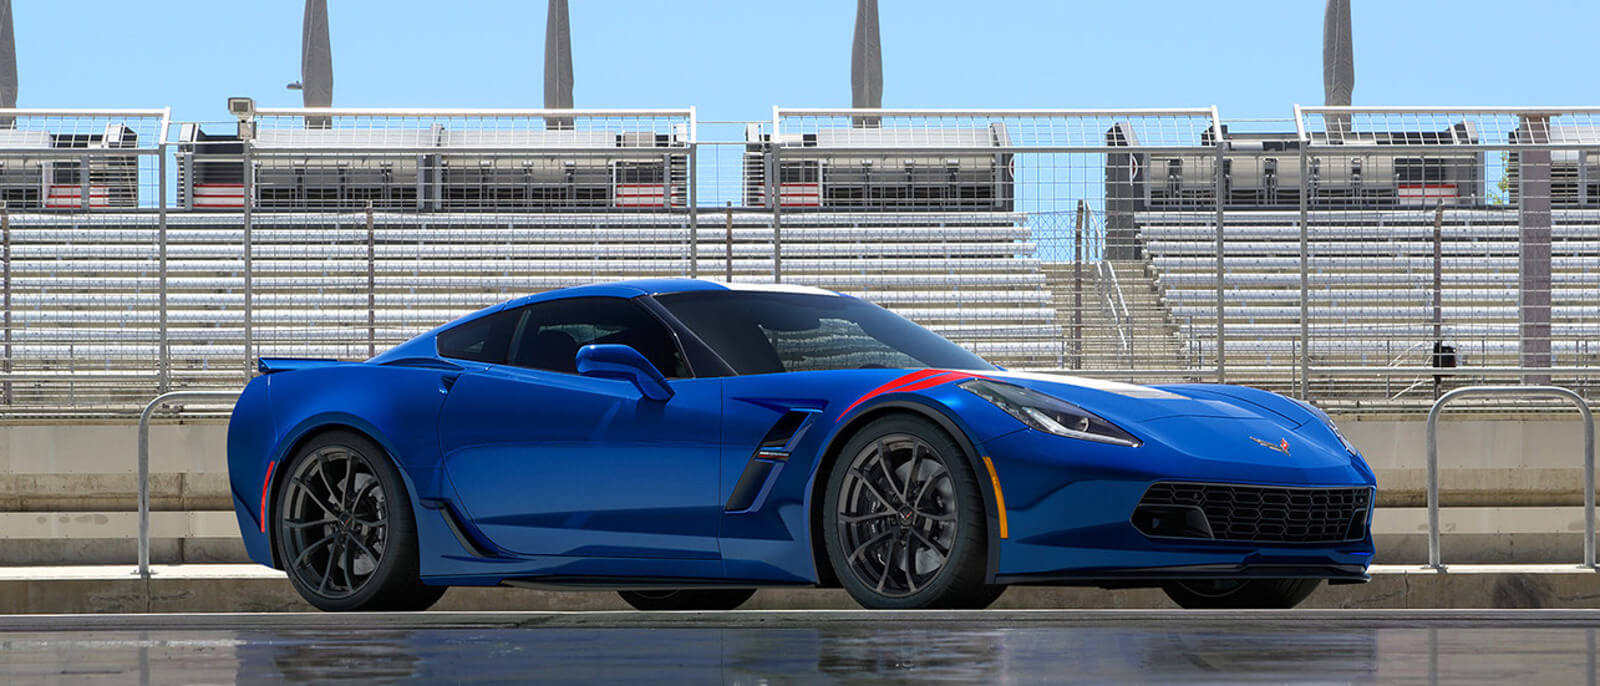 2017 chevy corvette grand sport coming soon to homewood. Black Bedroom Furniture Sets. Home Design Ideas